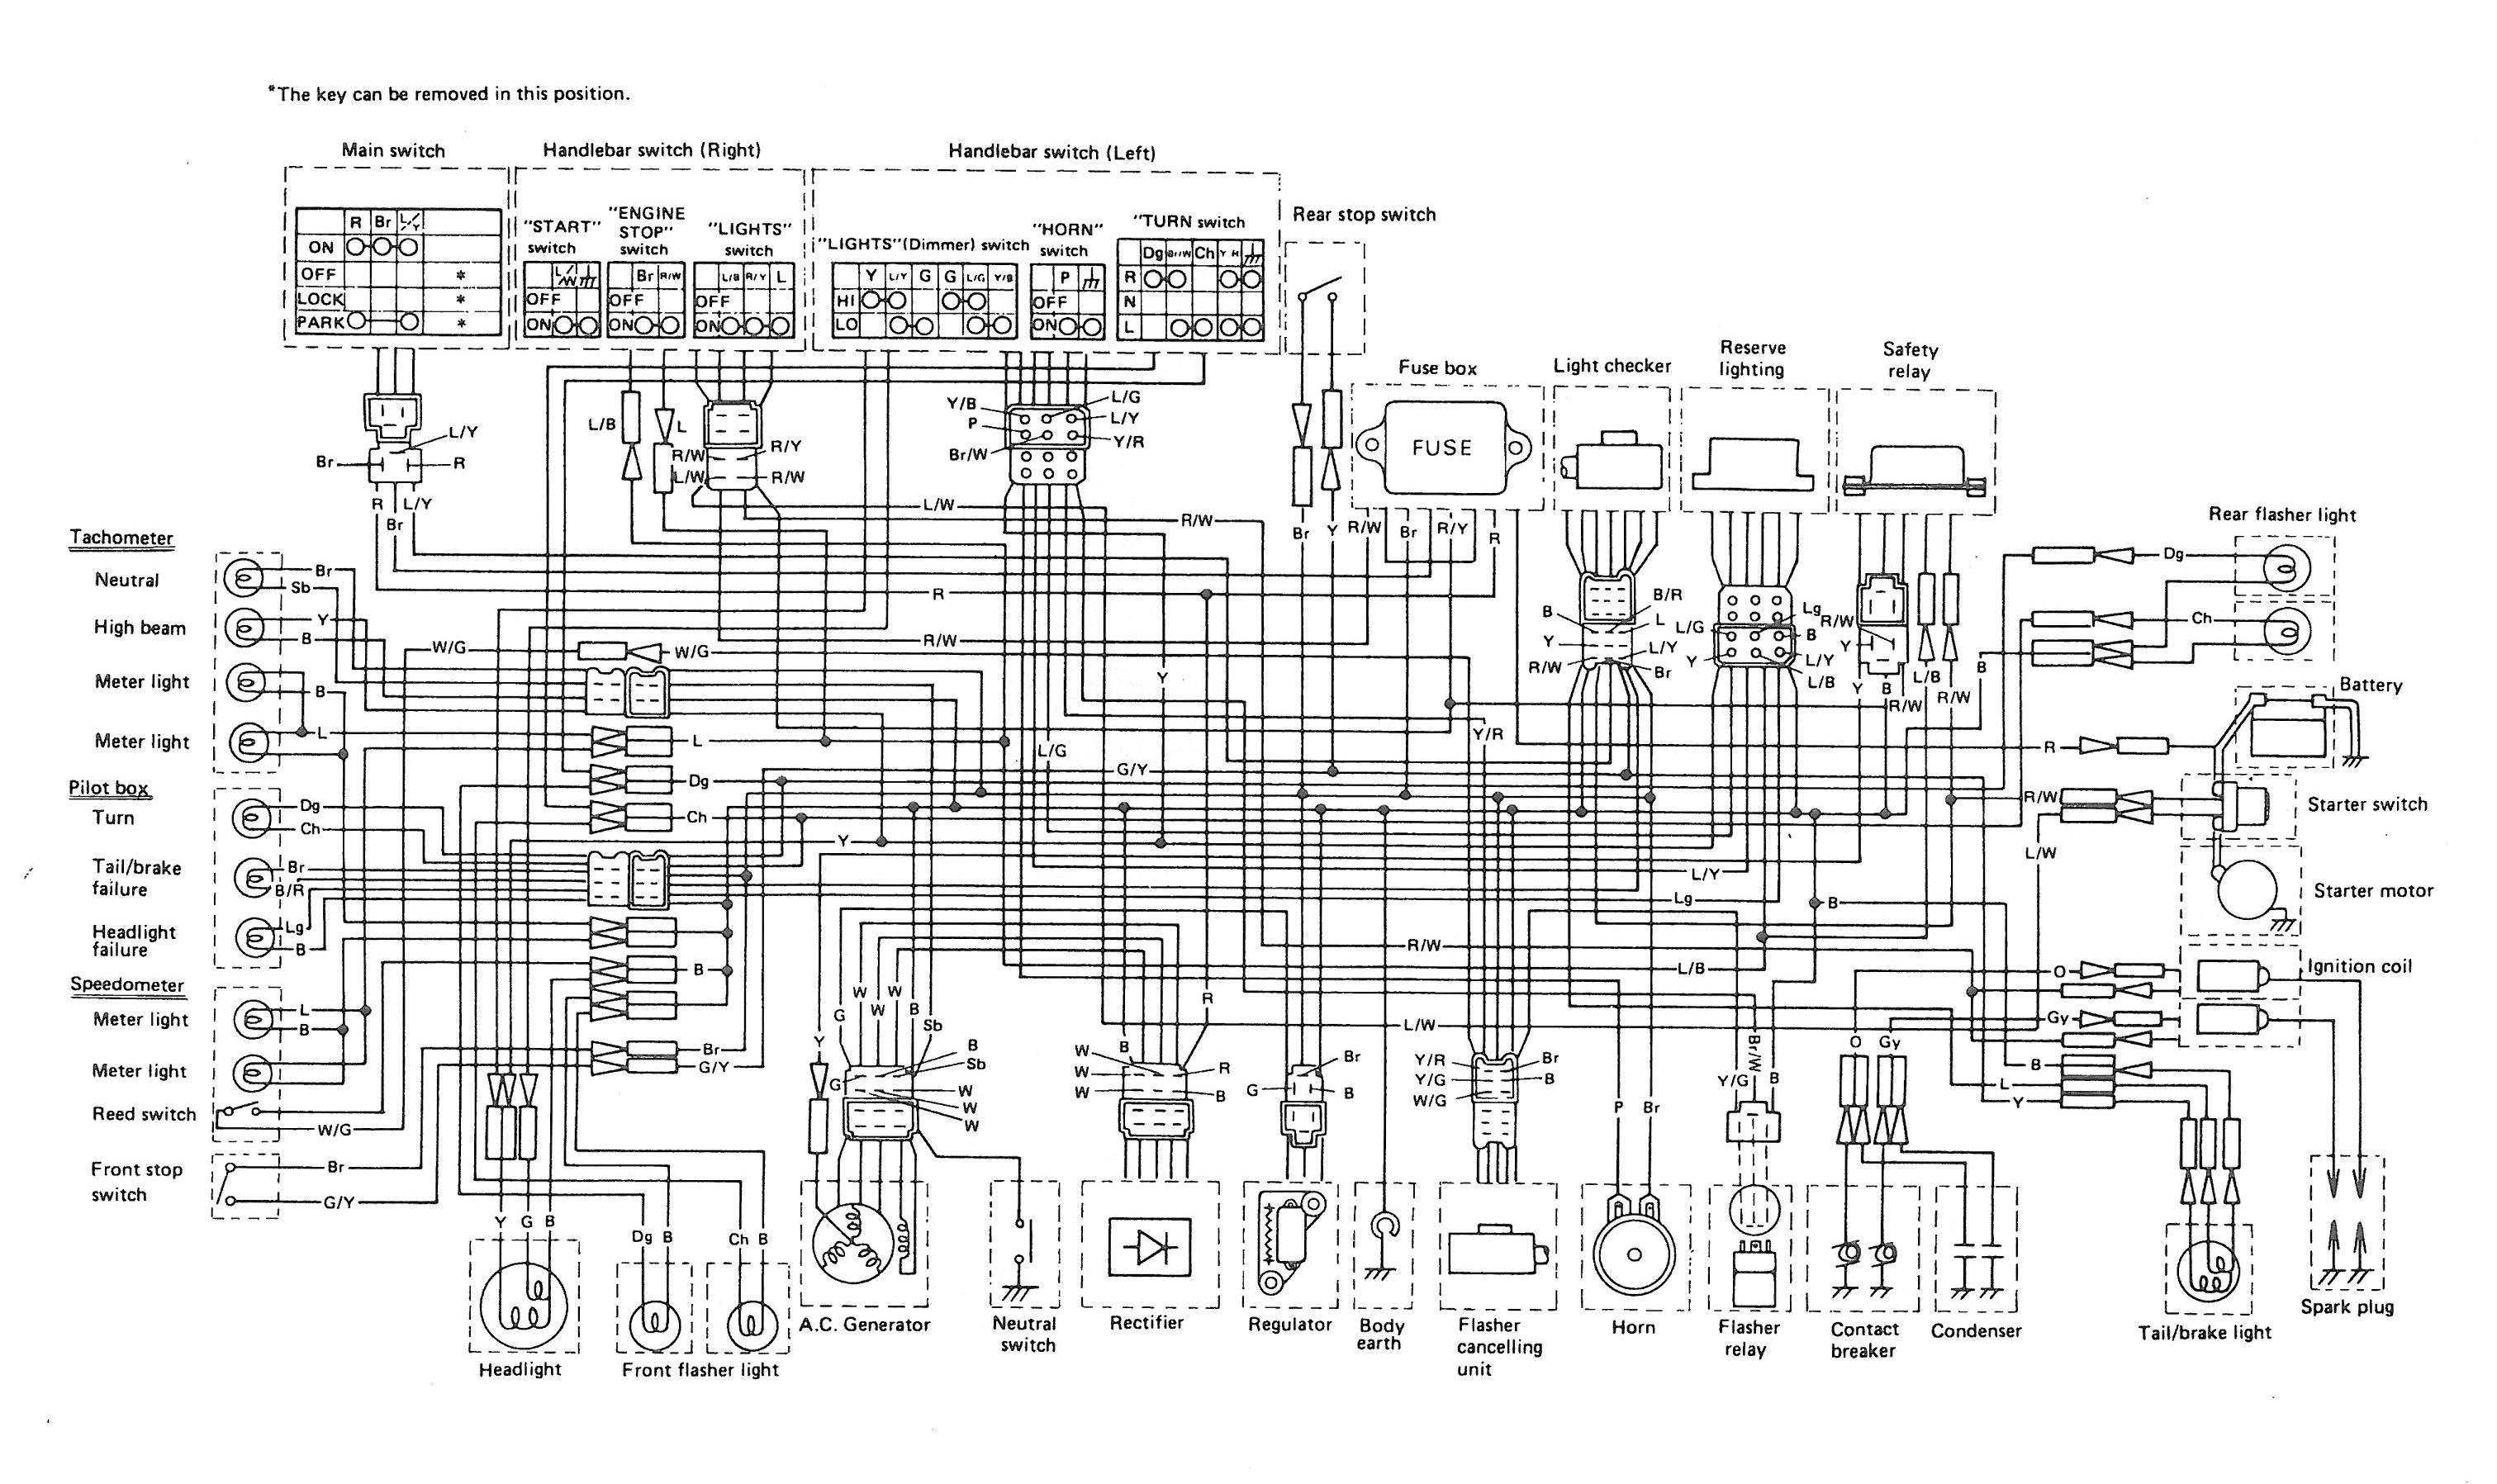 78 xsse wiring 6 1 wiring thexscafe 1978 yamaha xs650 wiring diagram at virtualis.co